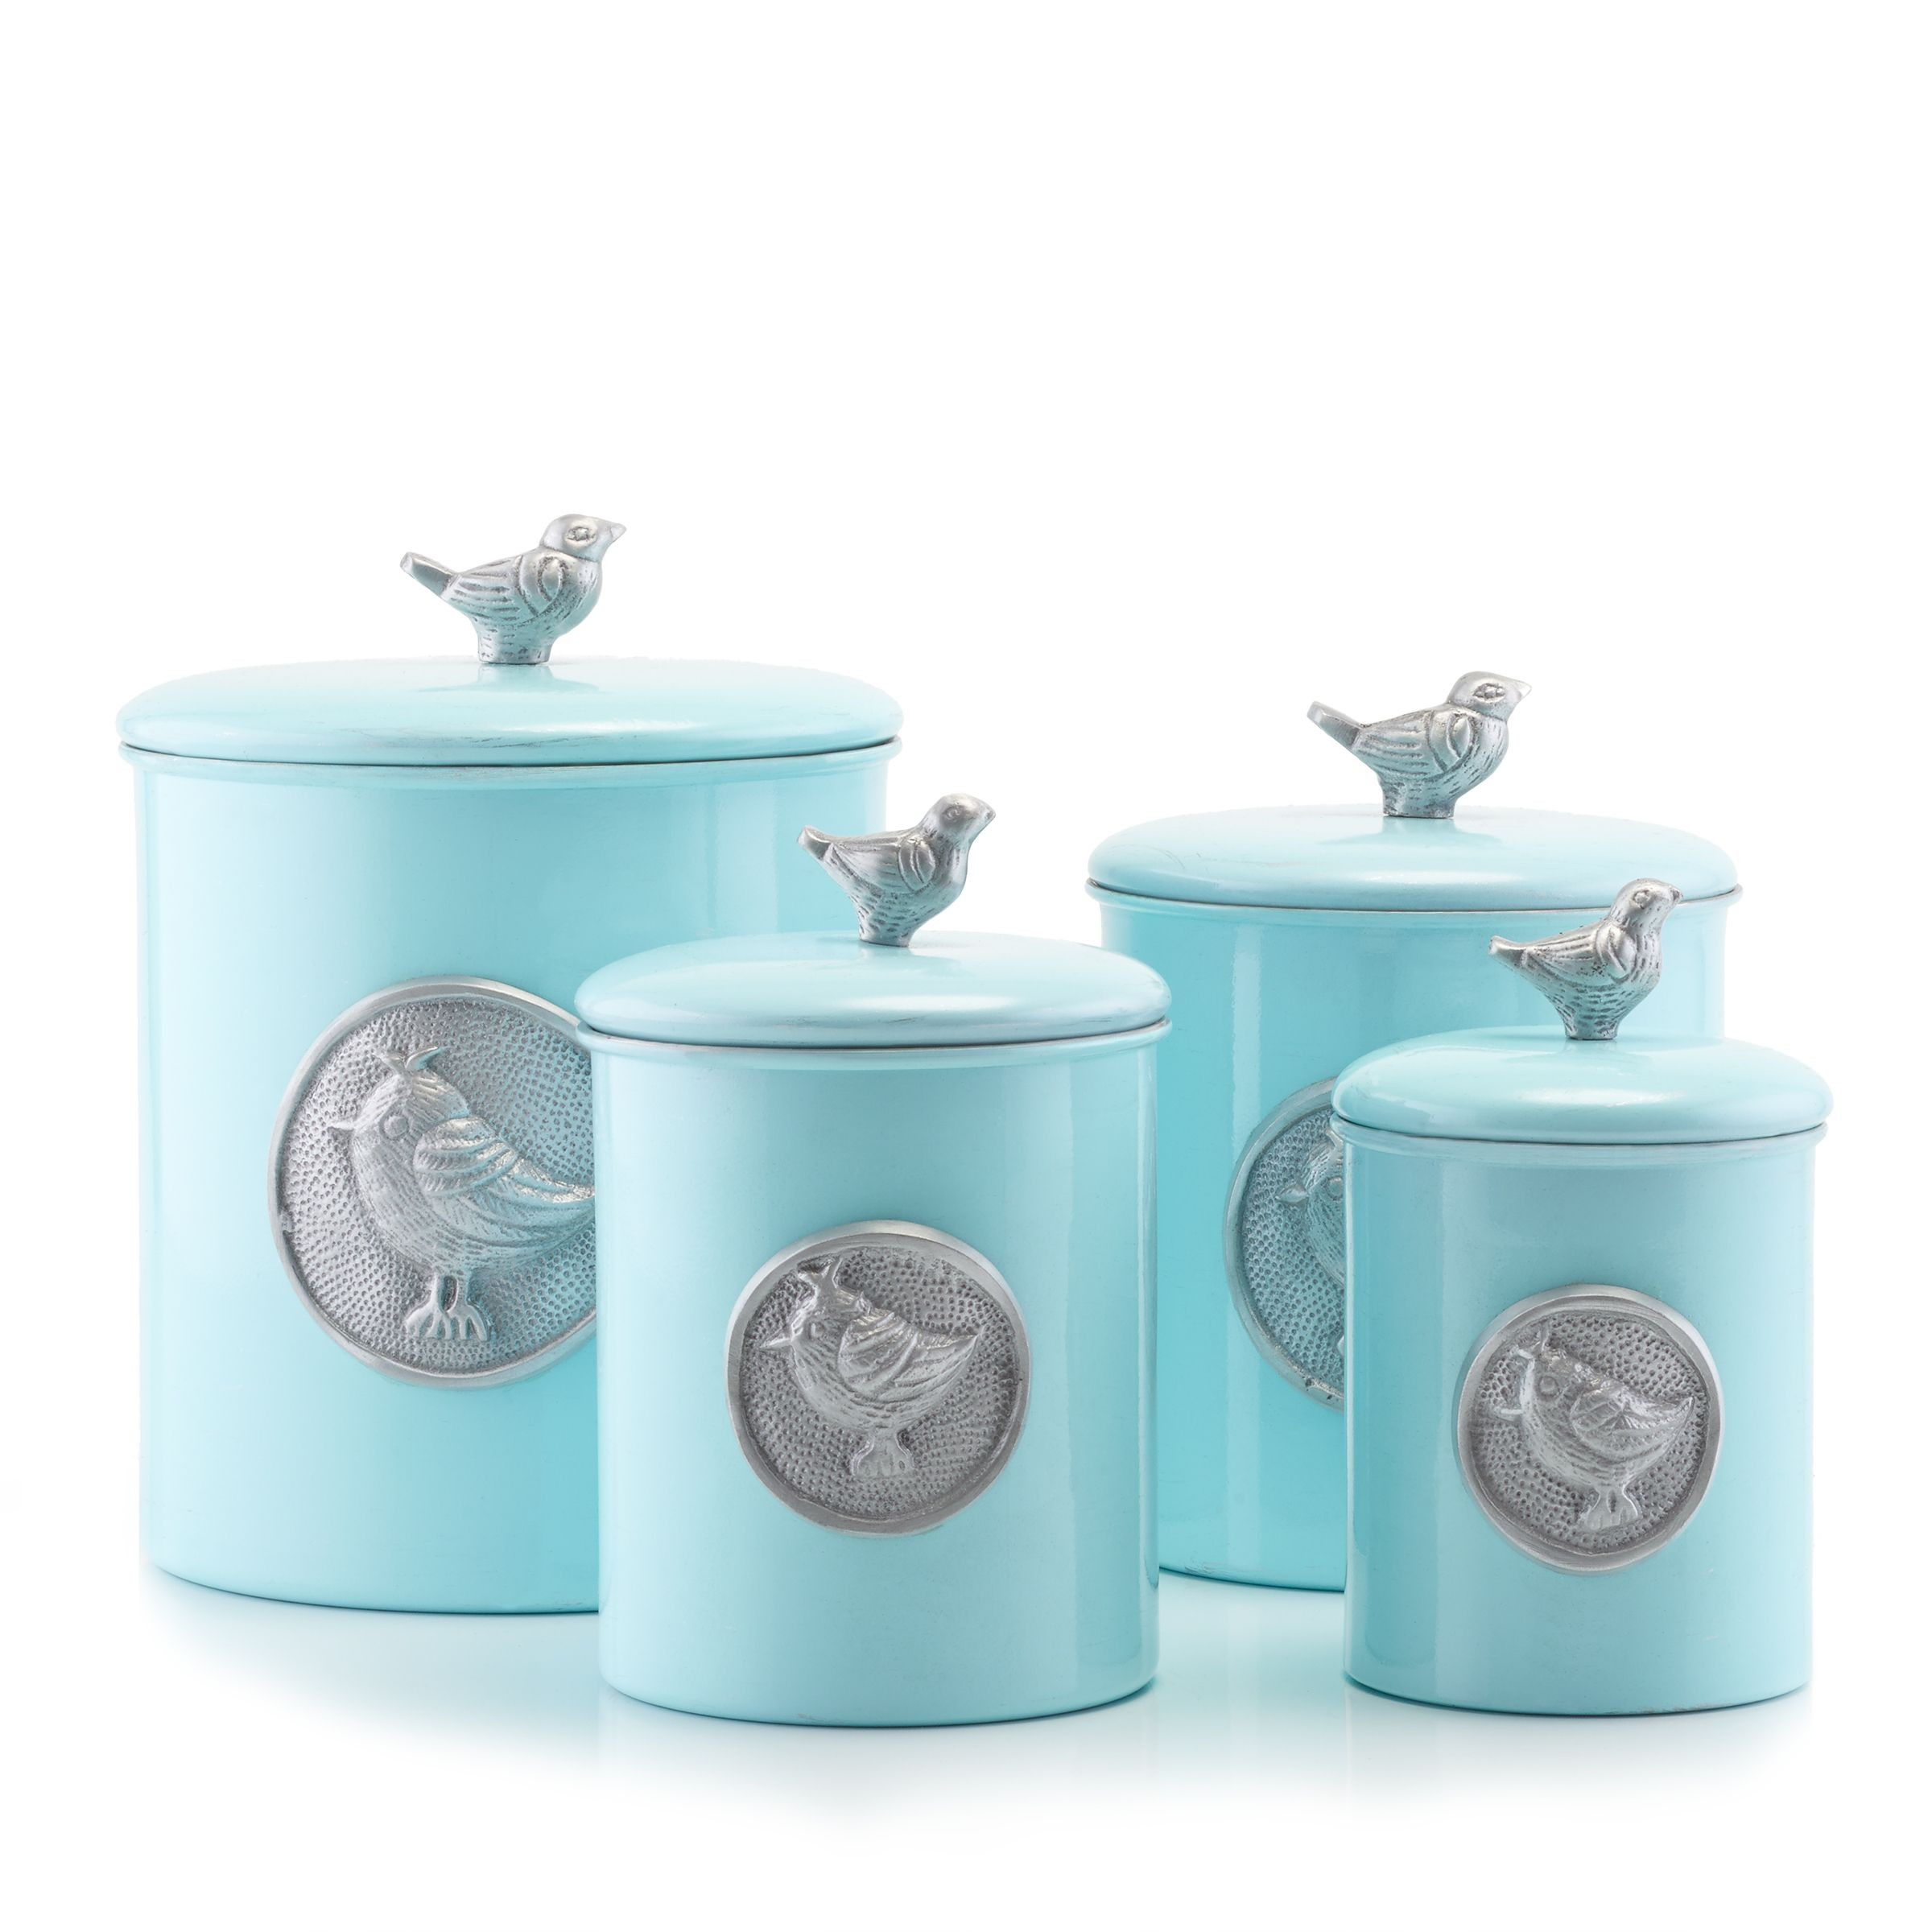 Stainless Wood Kitchen Canisters